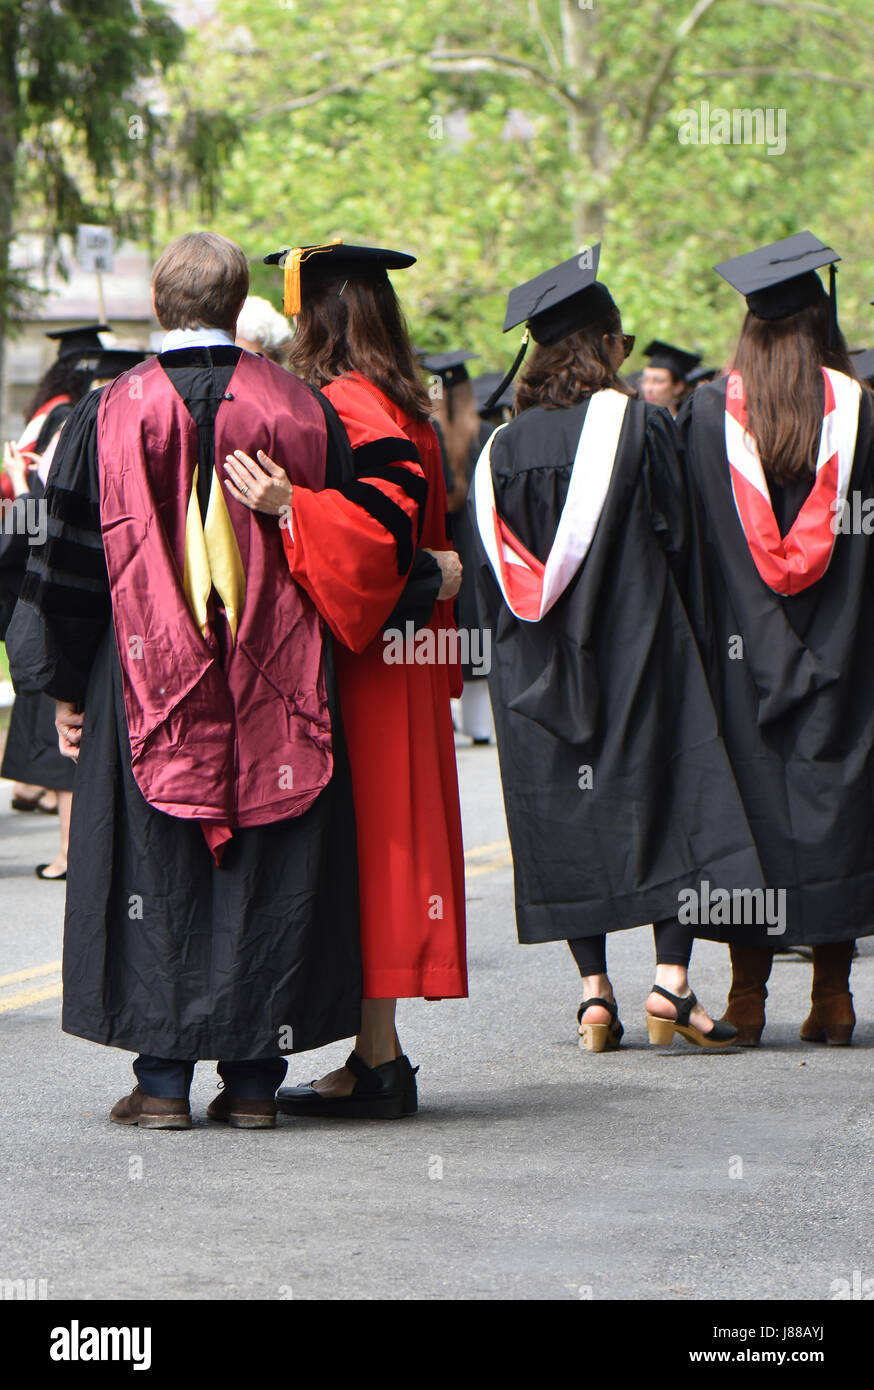 Dressed in graduation robes and caps students and parents celebrate the day. - Stock Image